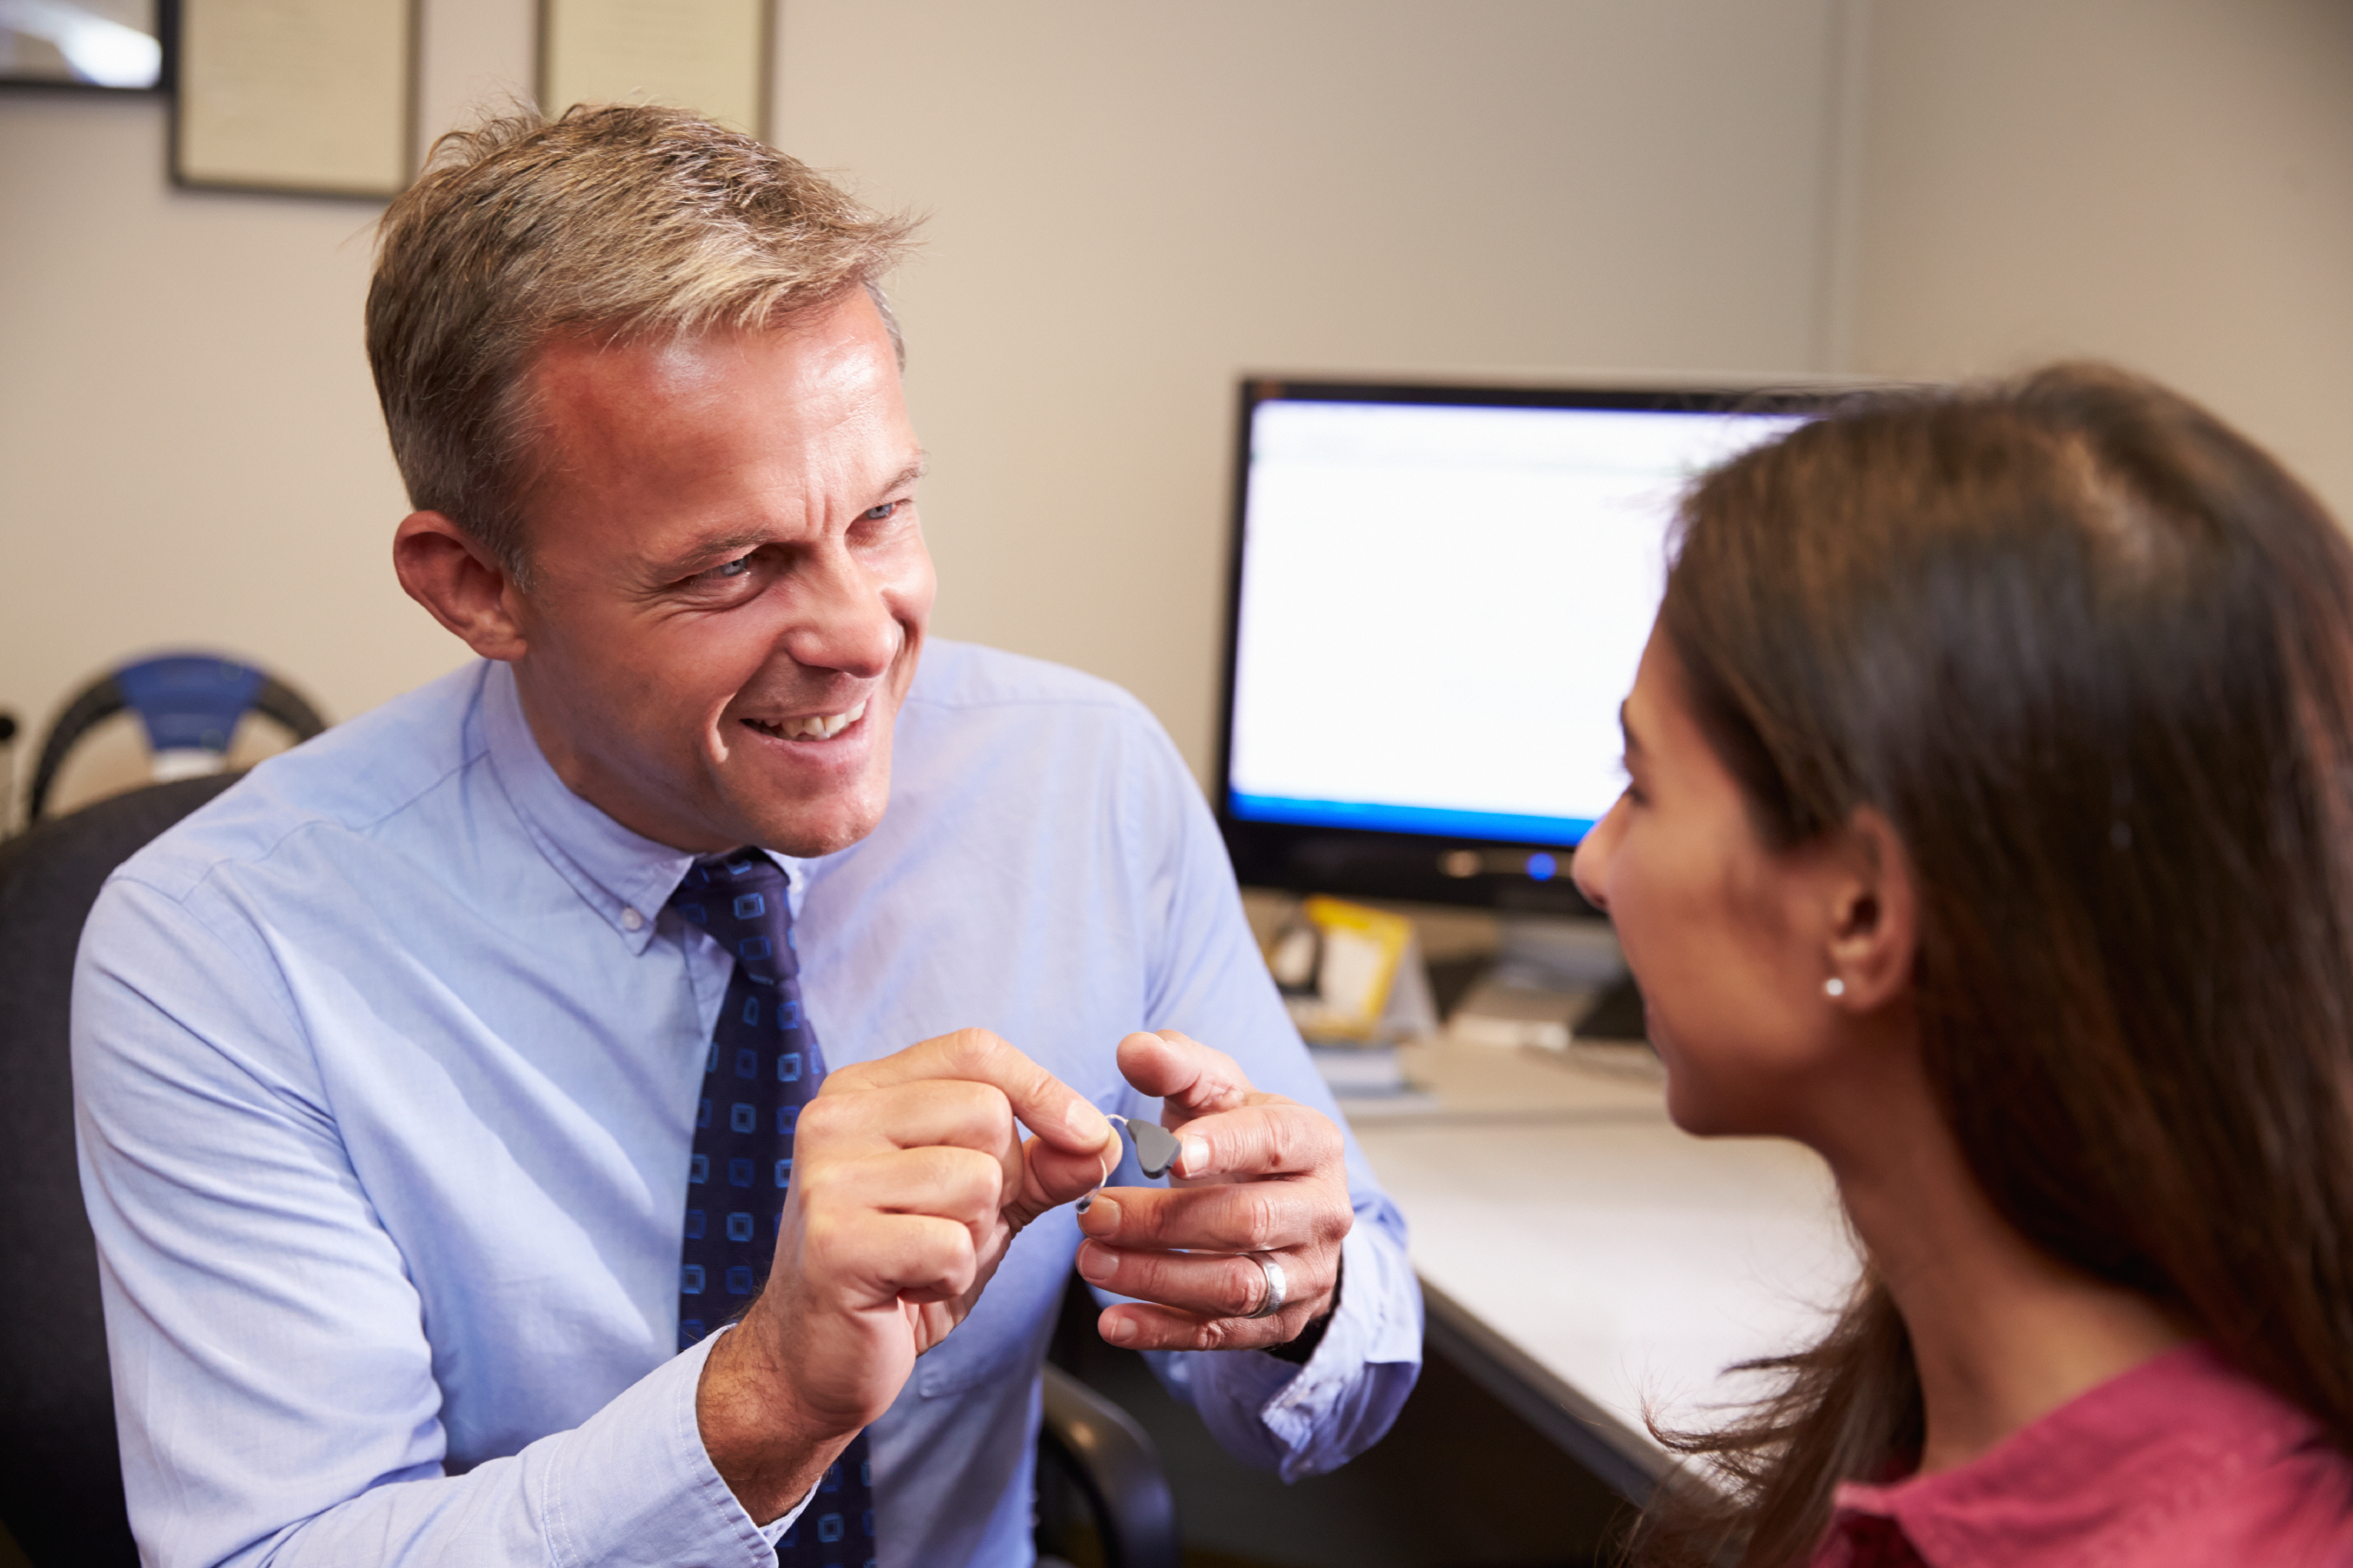 Audiologist Fitting Female Patient With Hearing Aid